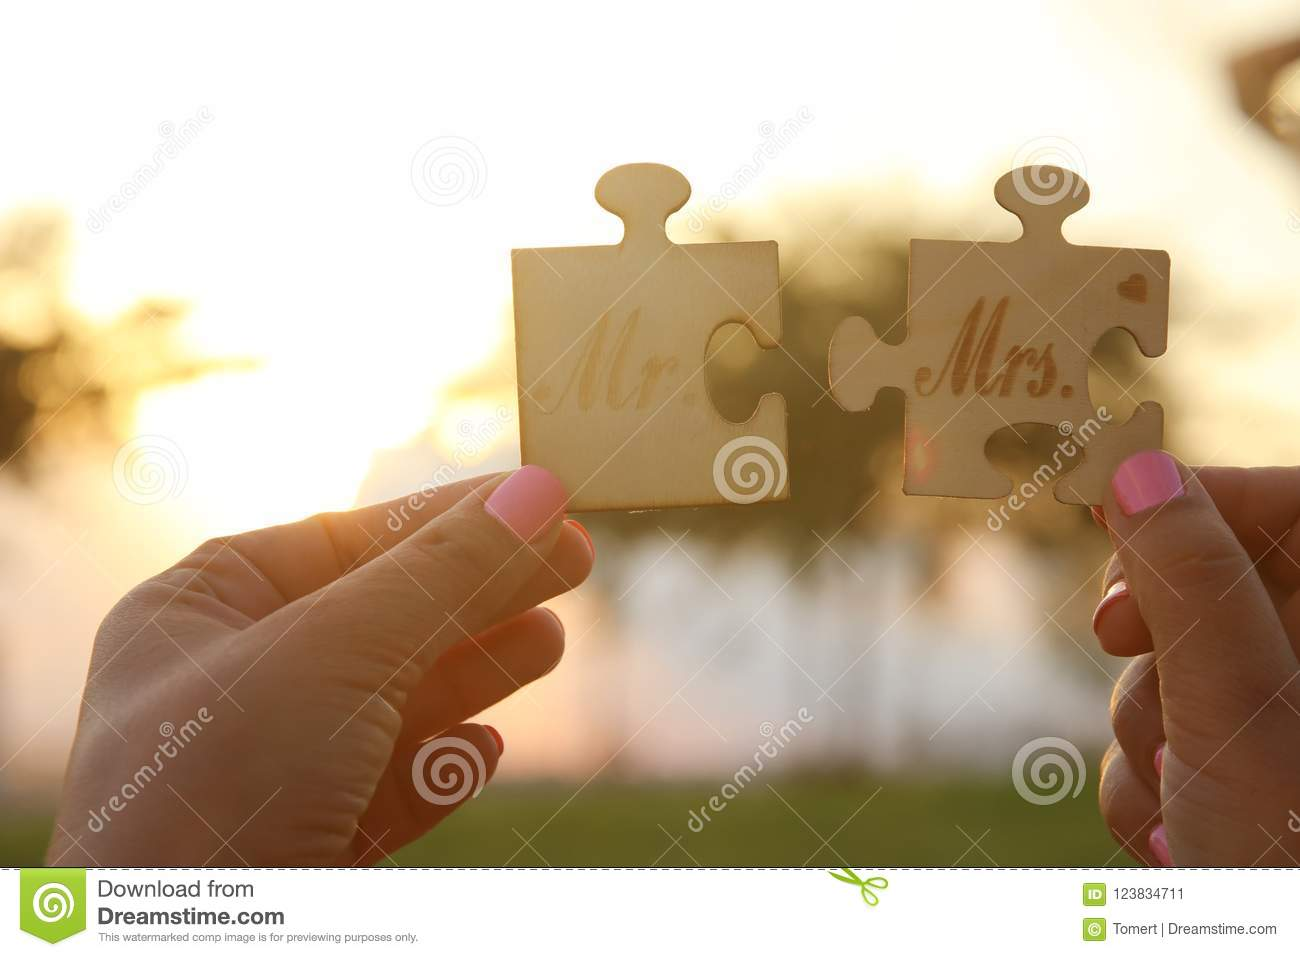 Woman hands holding Mr and Mrs sign during sunset time. harmony and wedding concept.